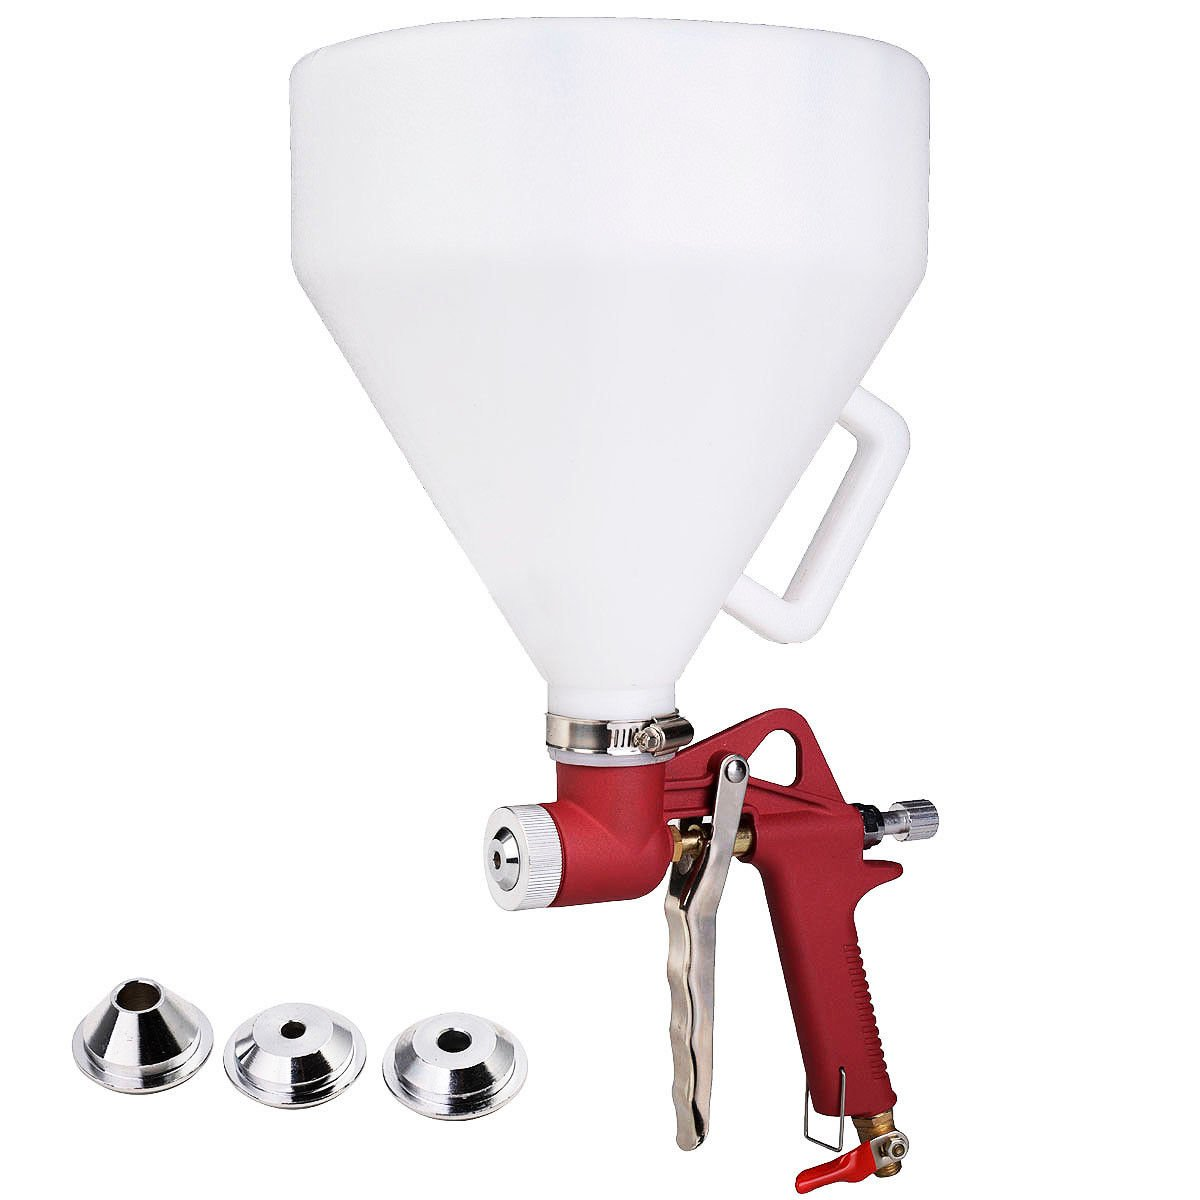 цены  Super buy 1.45 Gallon Air Hopper Spray Gun Paint Texture Tool Drywall Wall Painting Sprayer w/3 Nozzle